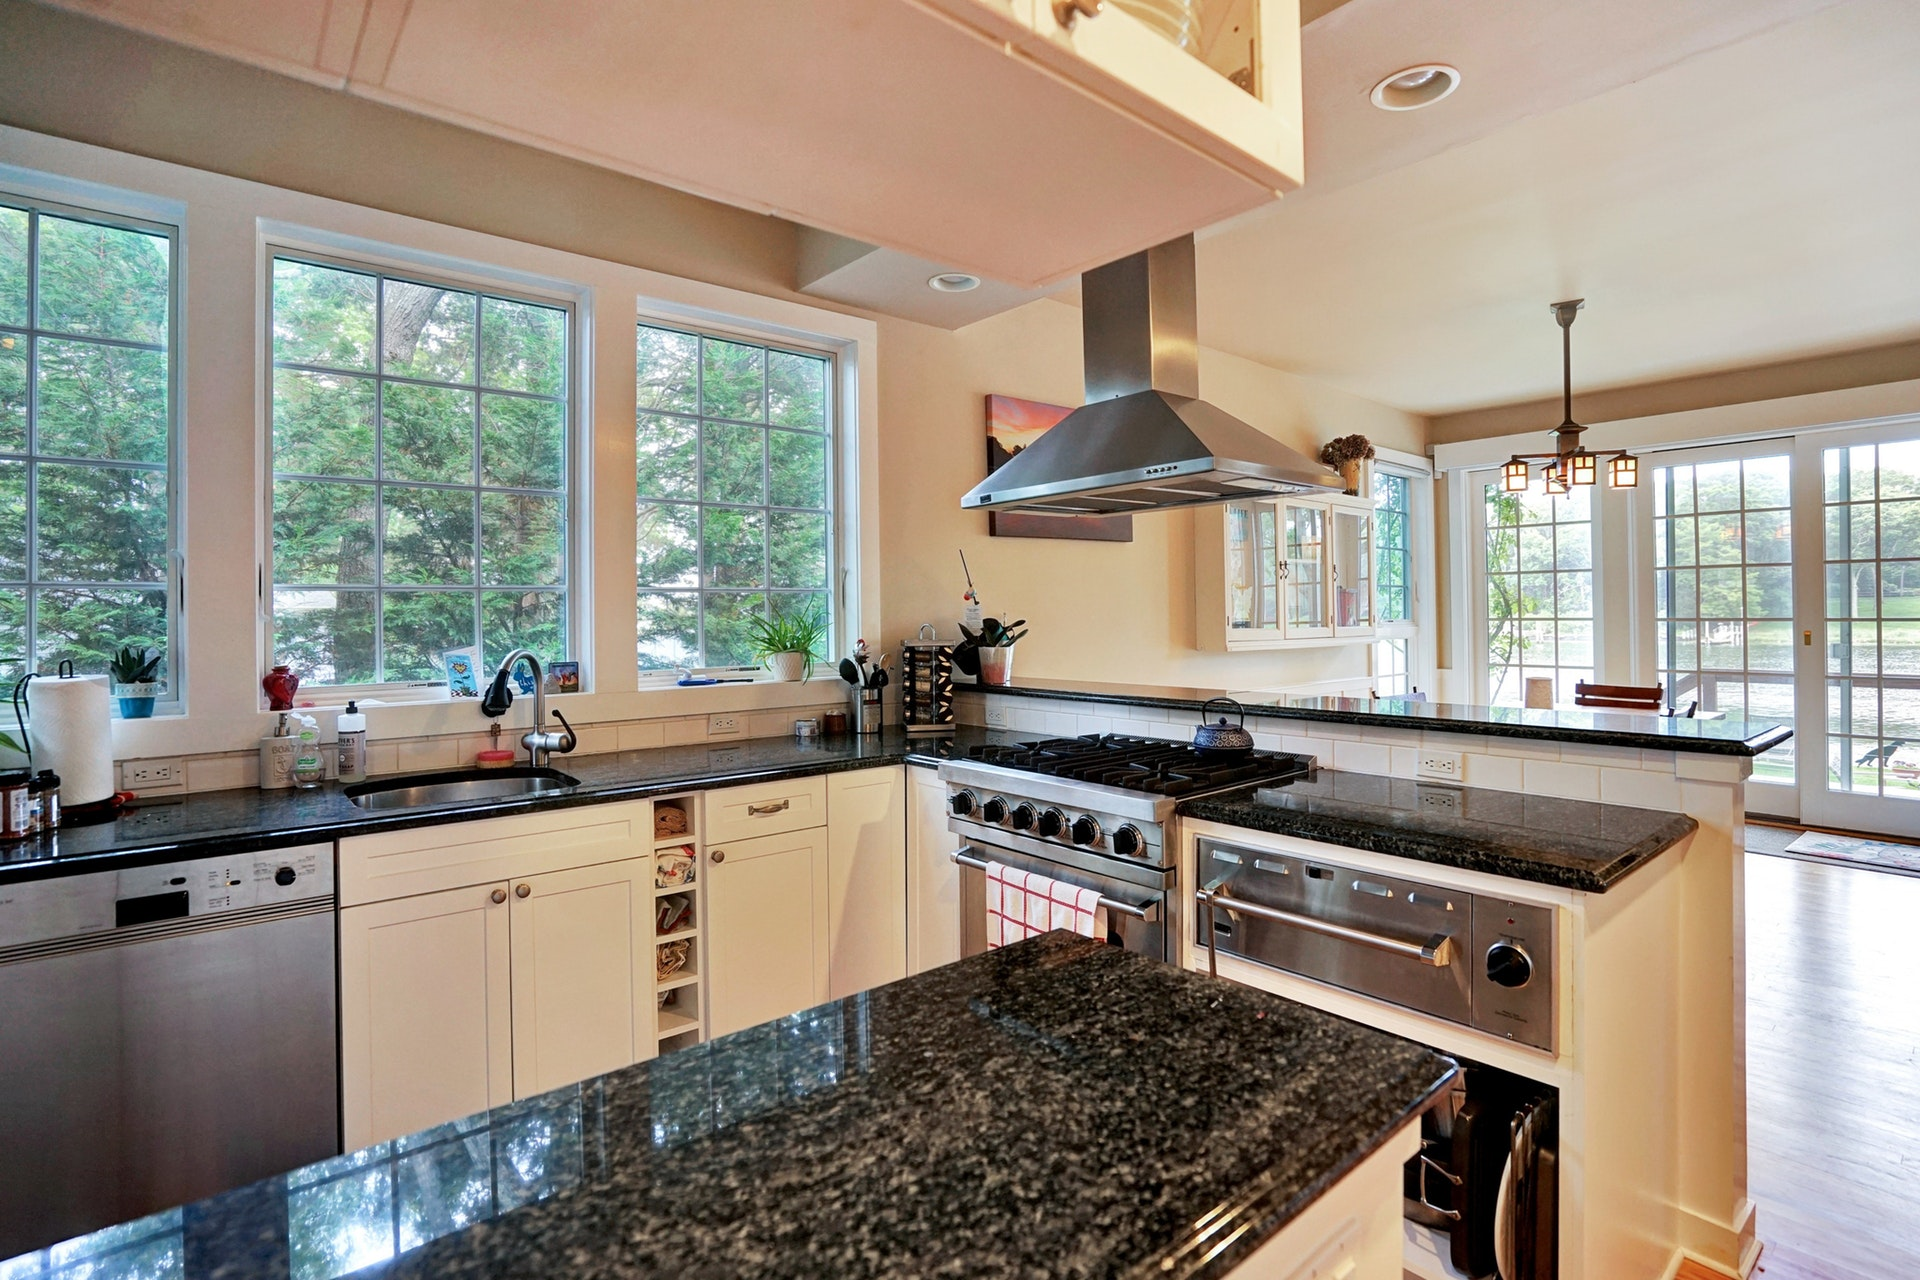 Exquisite Waterfront Home With All The Amenities. Central Air, Beautiful Kitchen With Top Of The Line Stainless Appliances. Open Floor Plan With Sliders To Deck And High End Hot Tub Overlooking The Water And Deeded Dock. New Outdoor Furniture And Bbq. The Perfect Retreat! Rates Are Weekly.